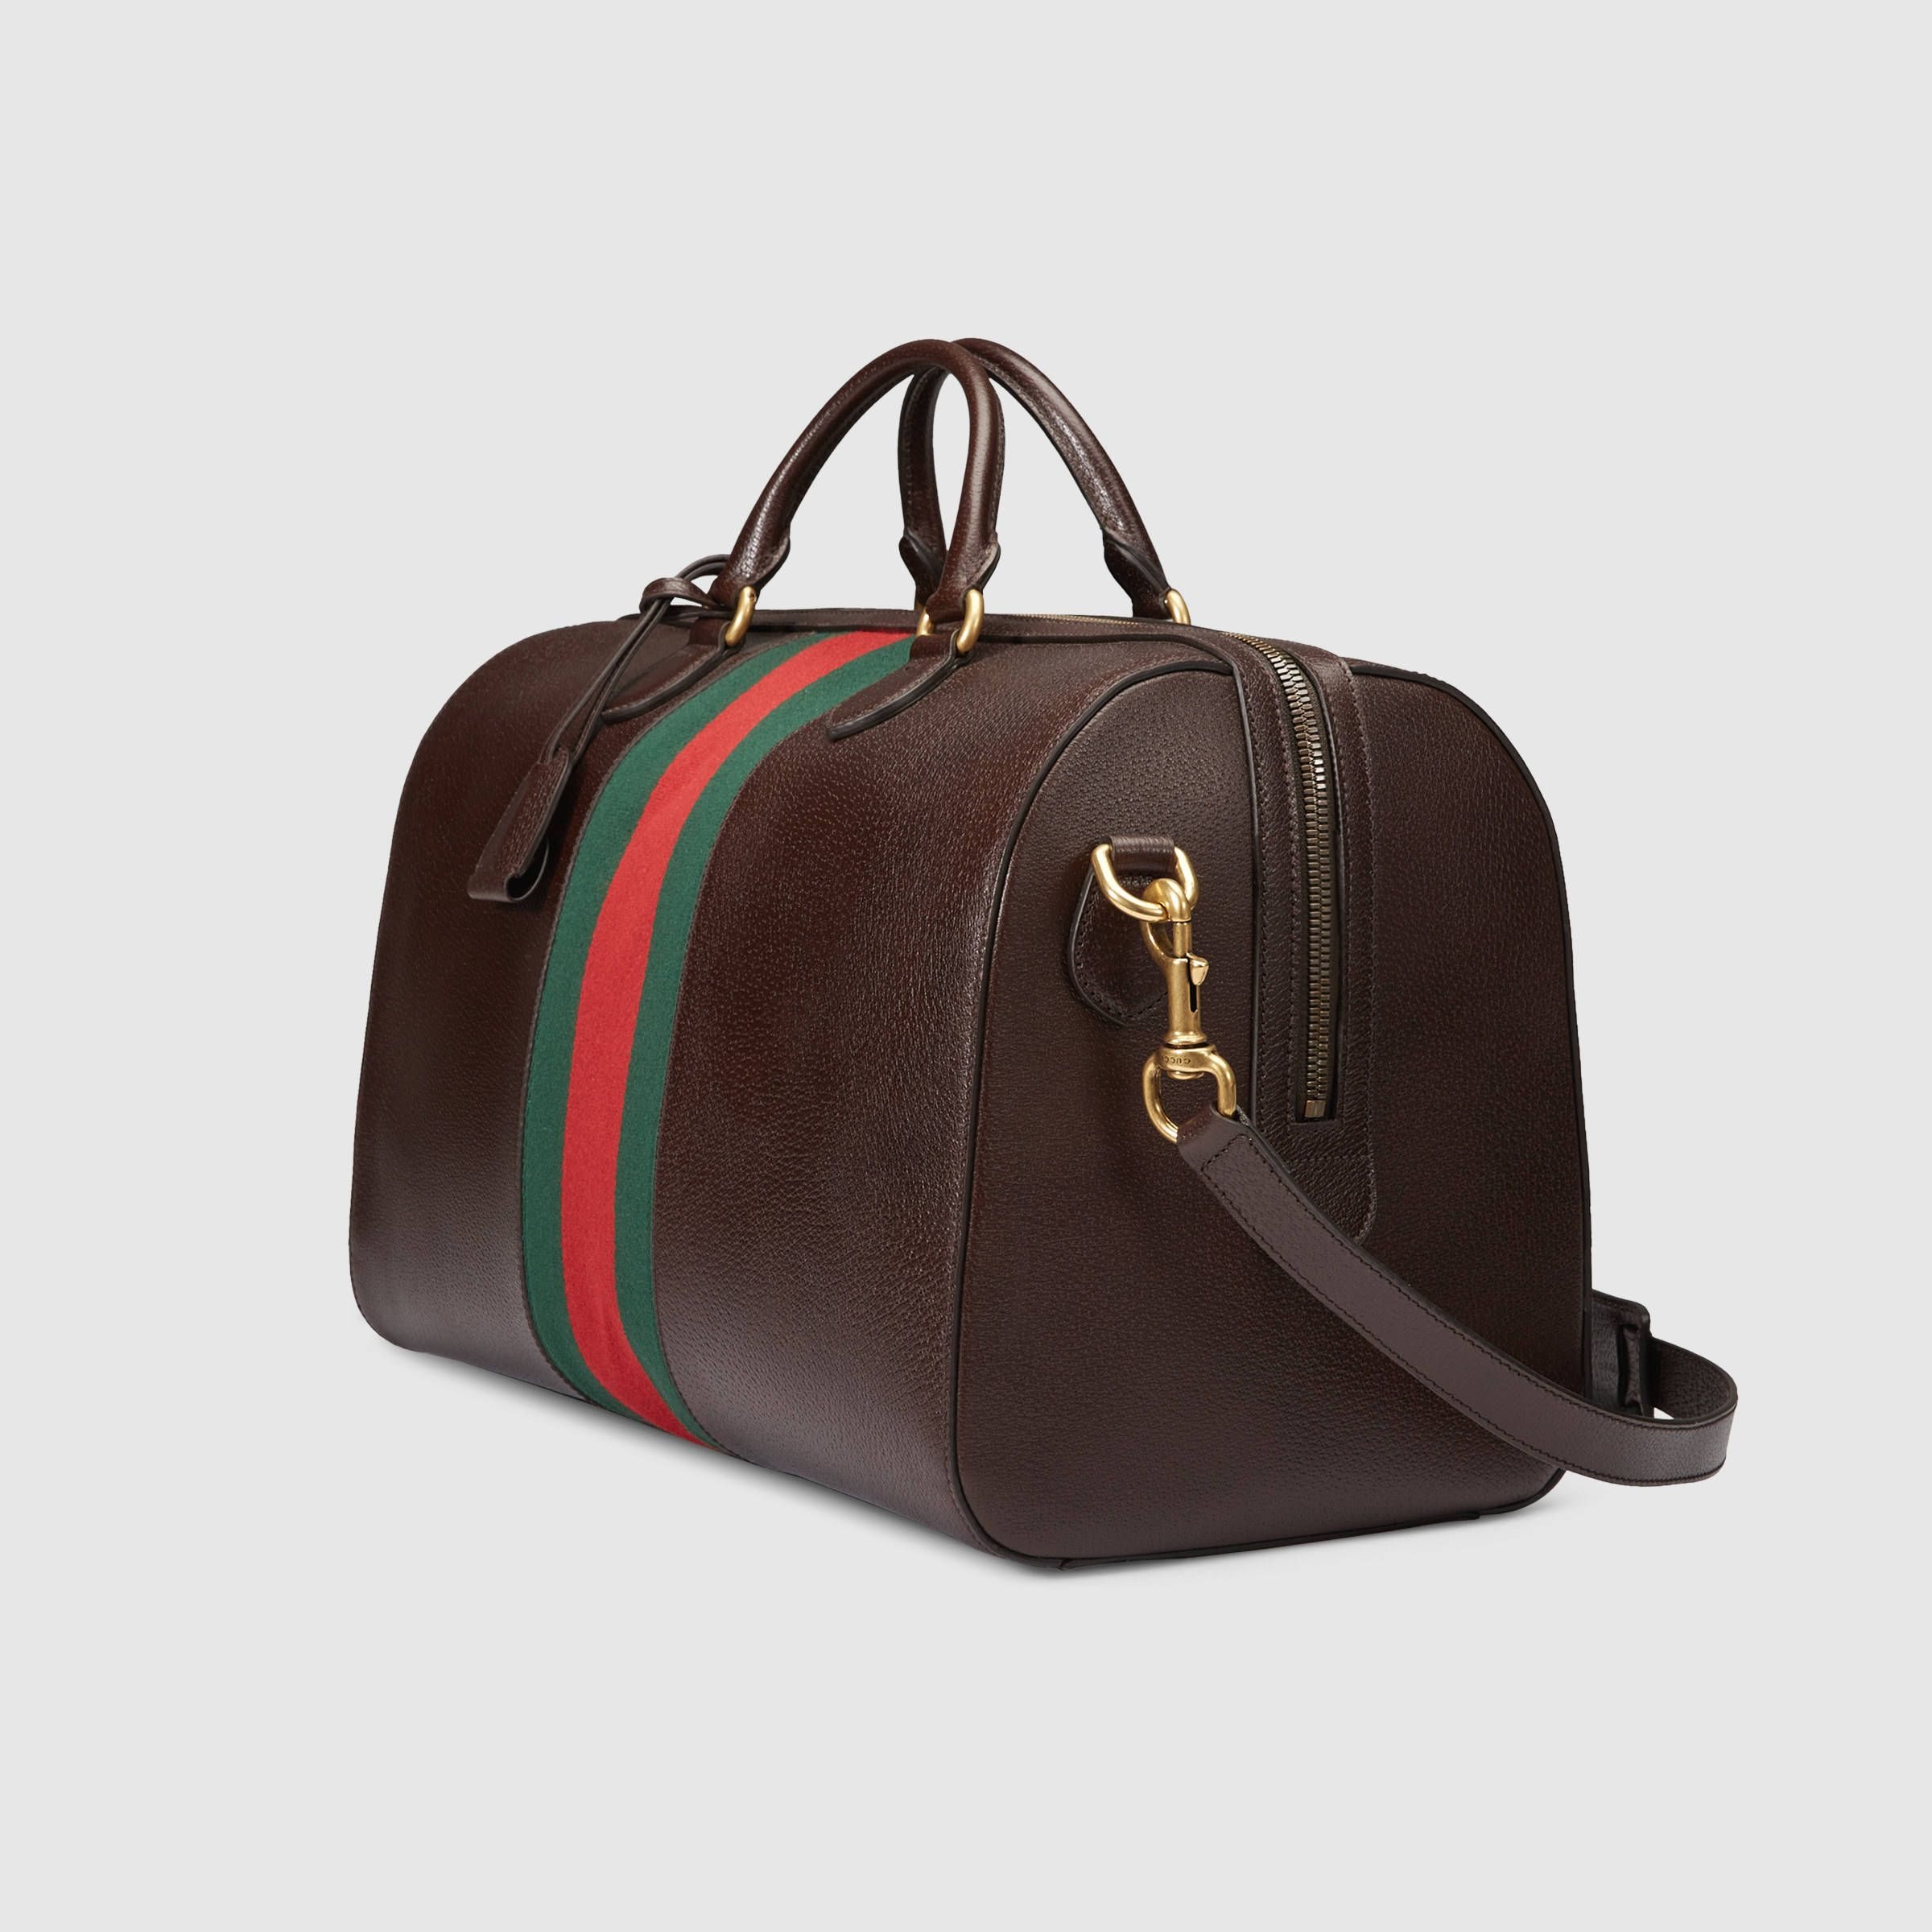 593ed7658fee Gucci Leather Duffle | expensive SH#T | Gucci travel bag, Bags, Gucci